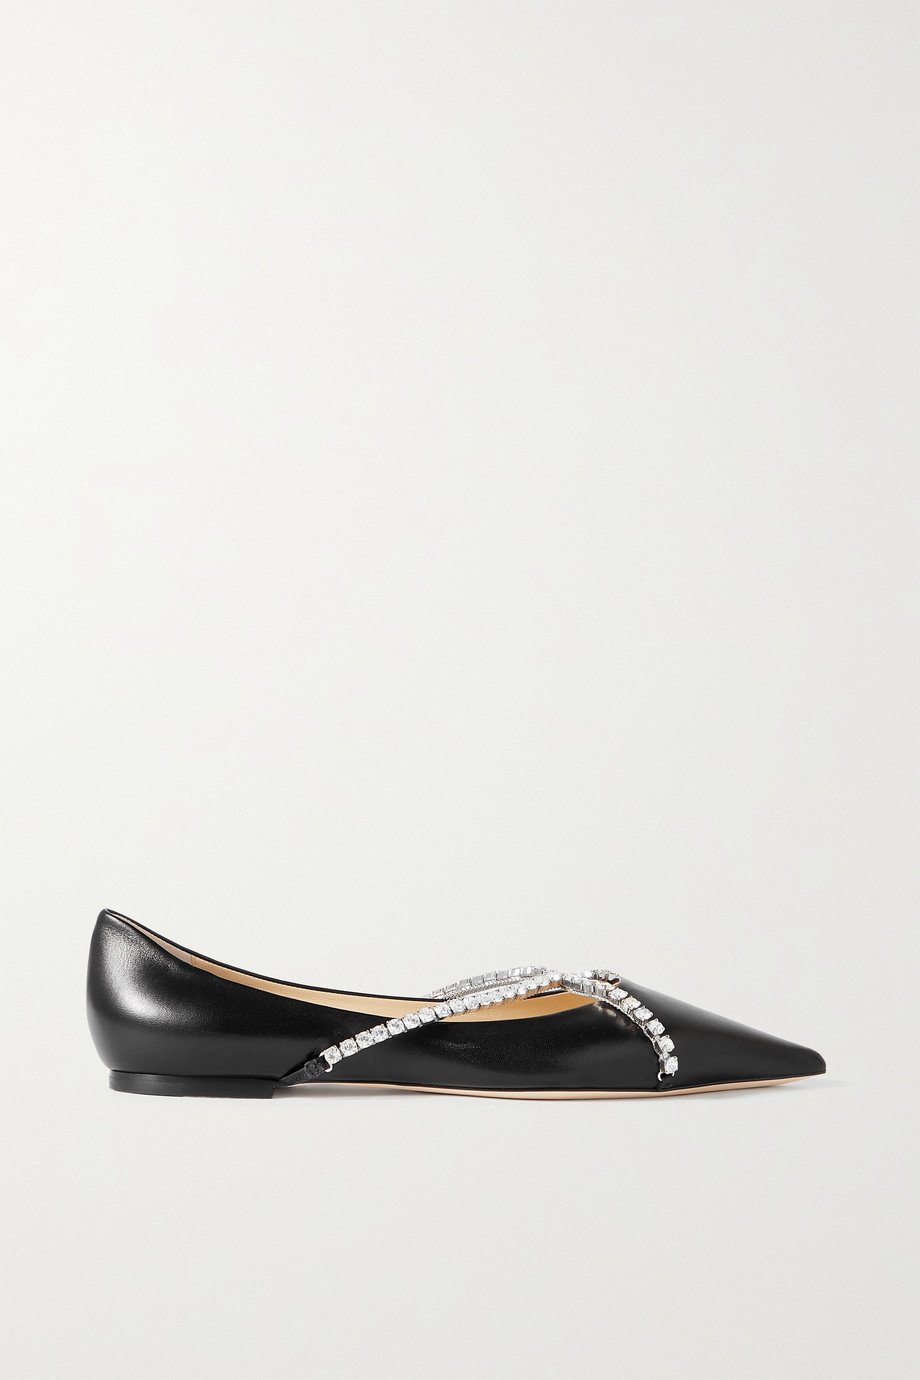 JIMMY CHOO Genevi crystal-embellished leather point-toe flats